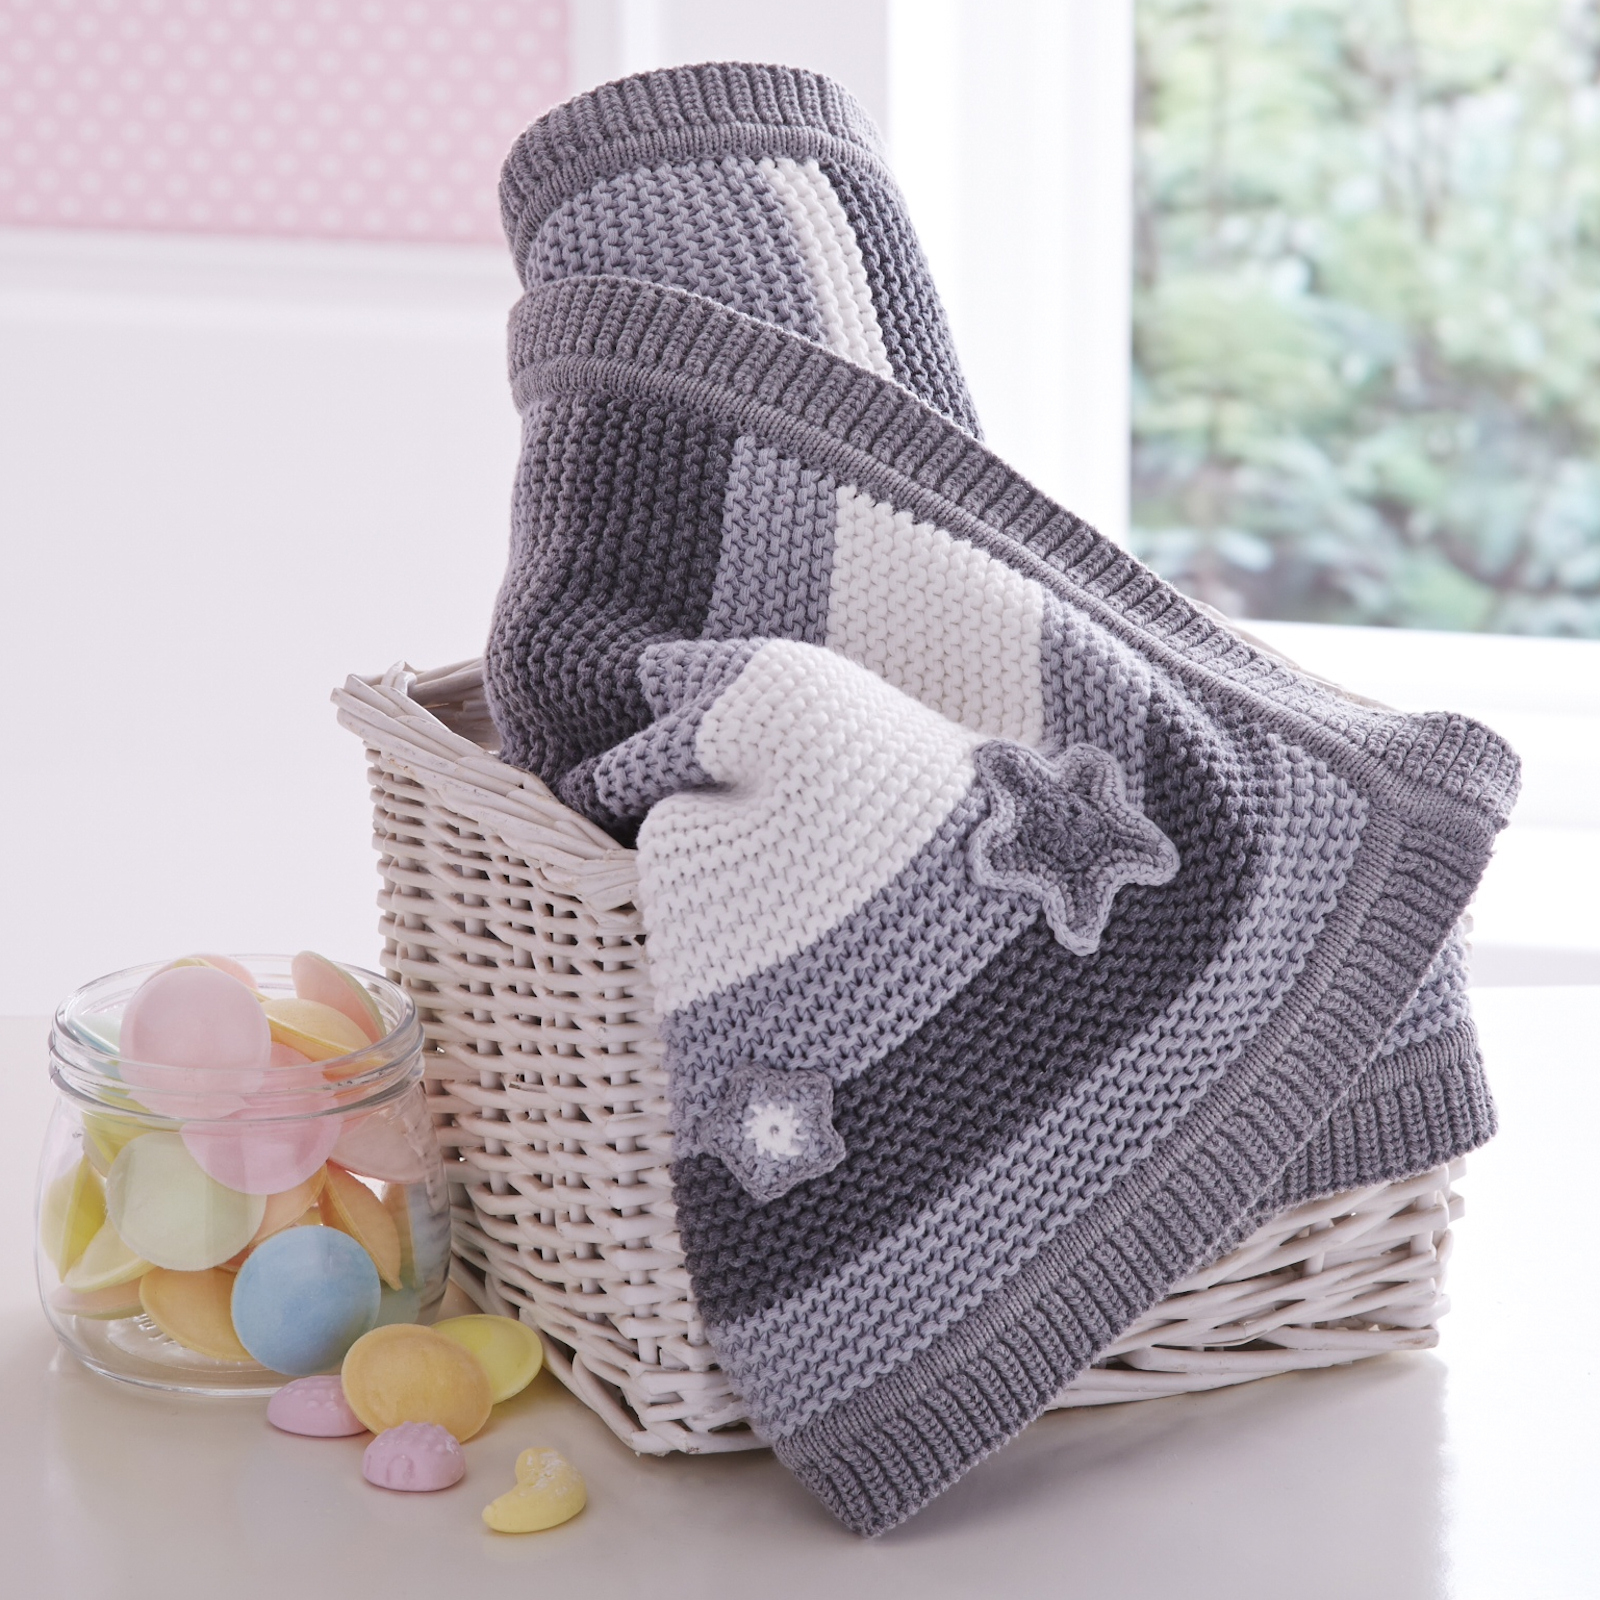 Clair De Lune Pick N Mix Knitted Pram Moses Basket